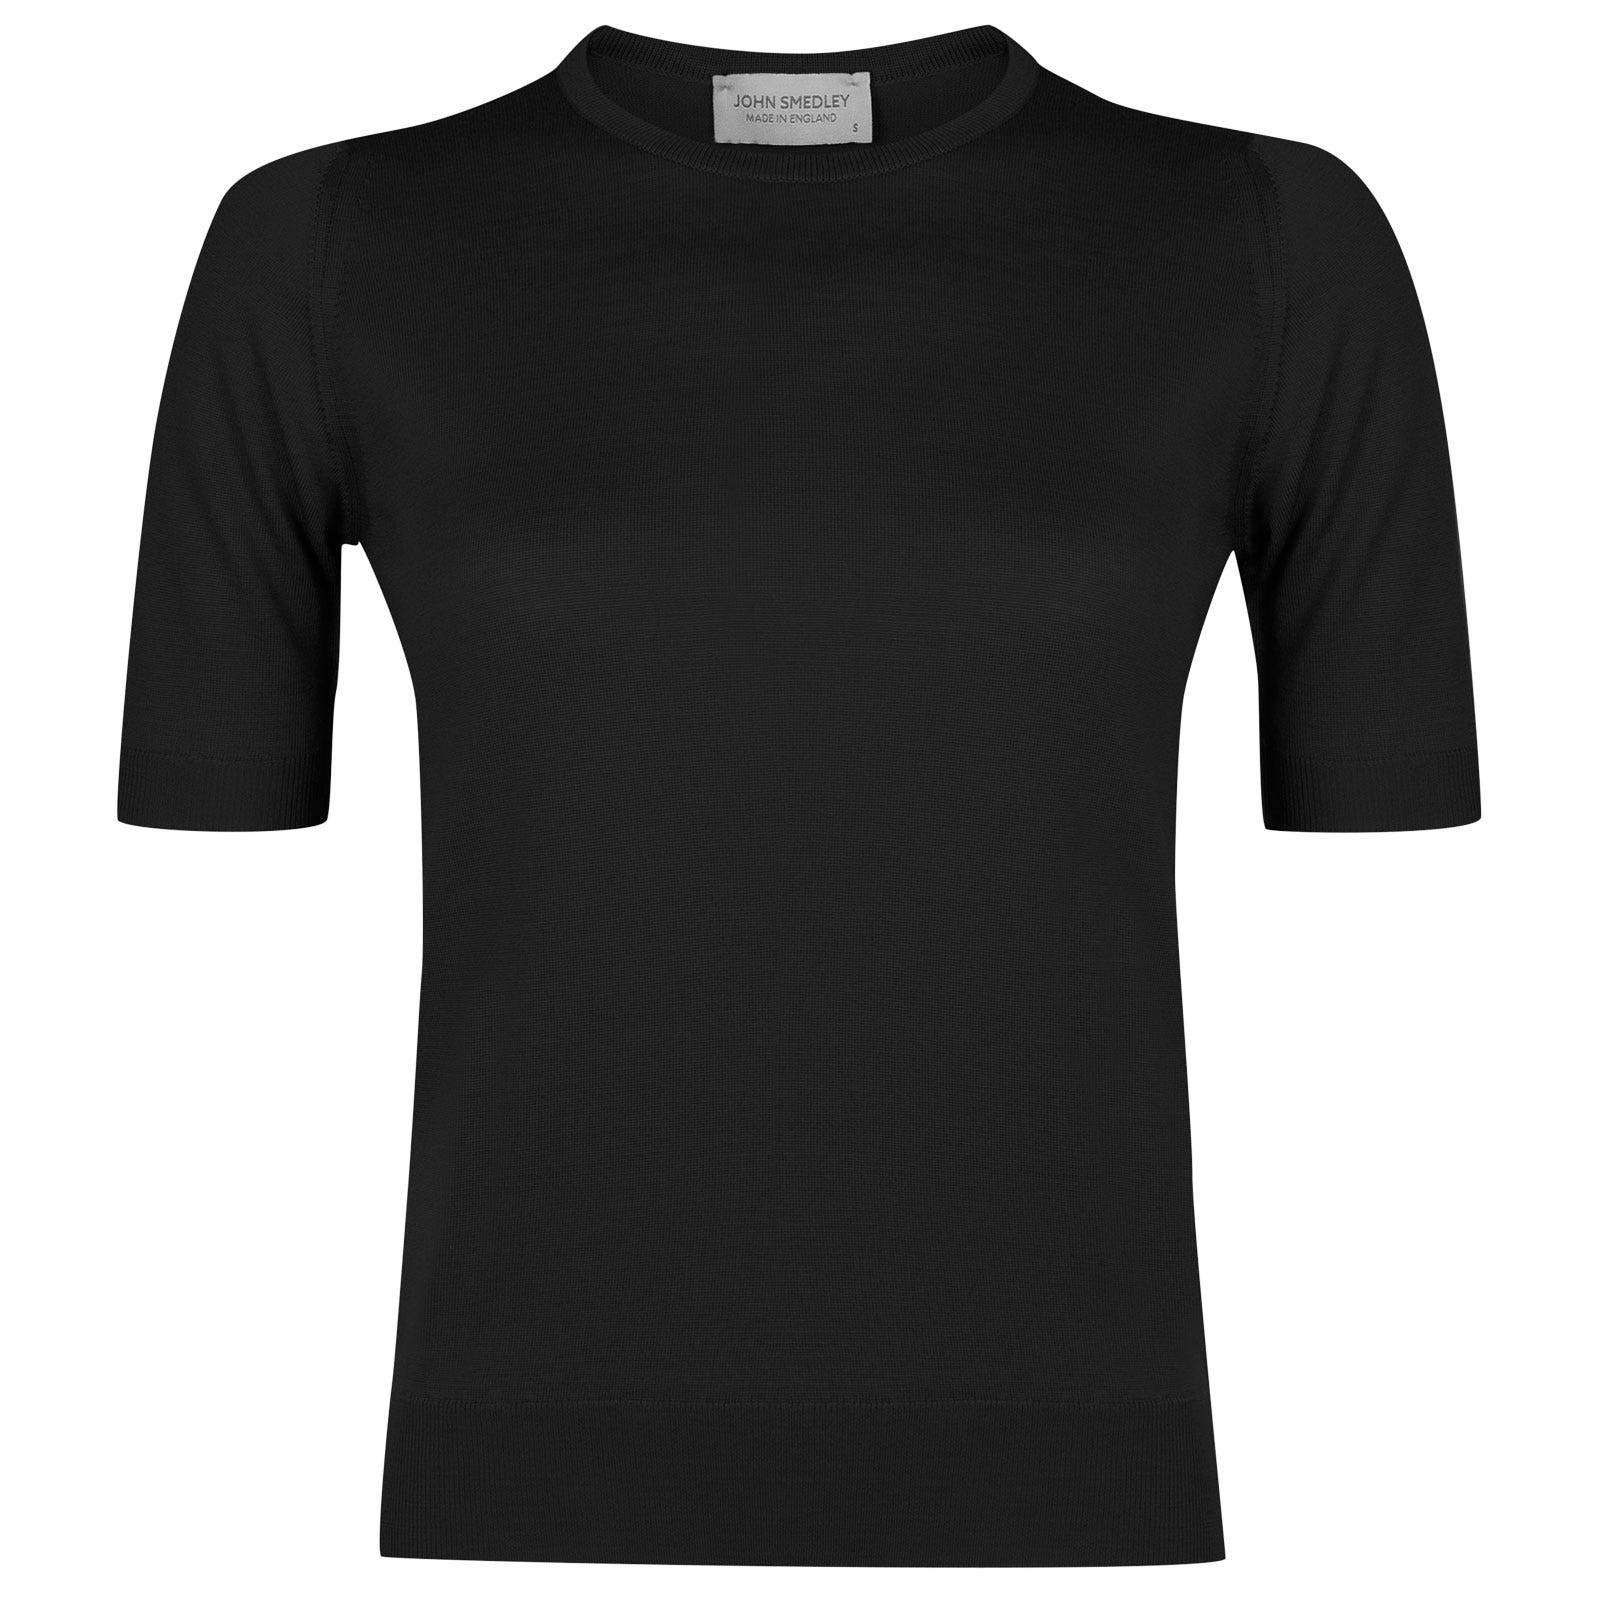 John Smedley trieste Merino Wool Sweater in Black-M